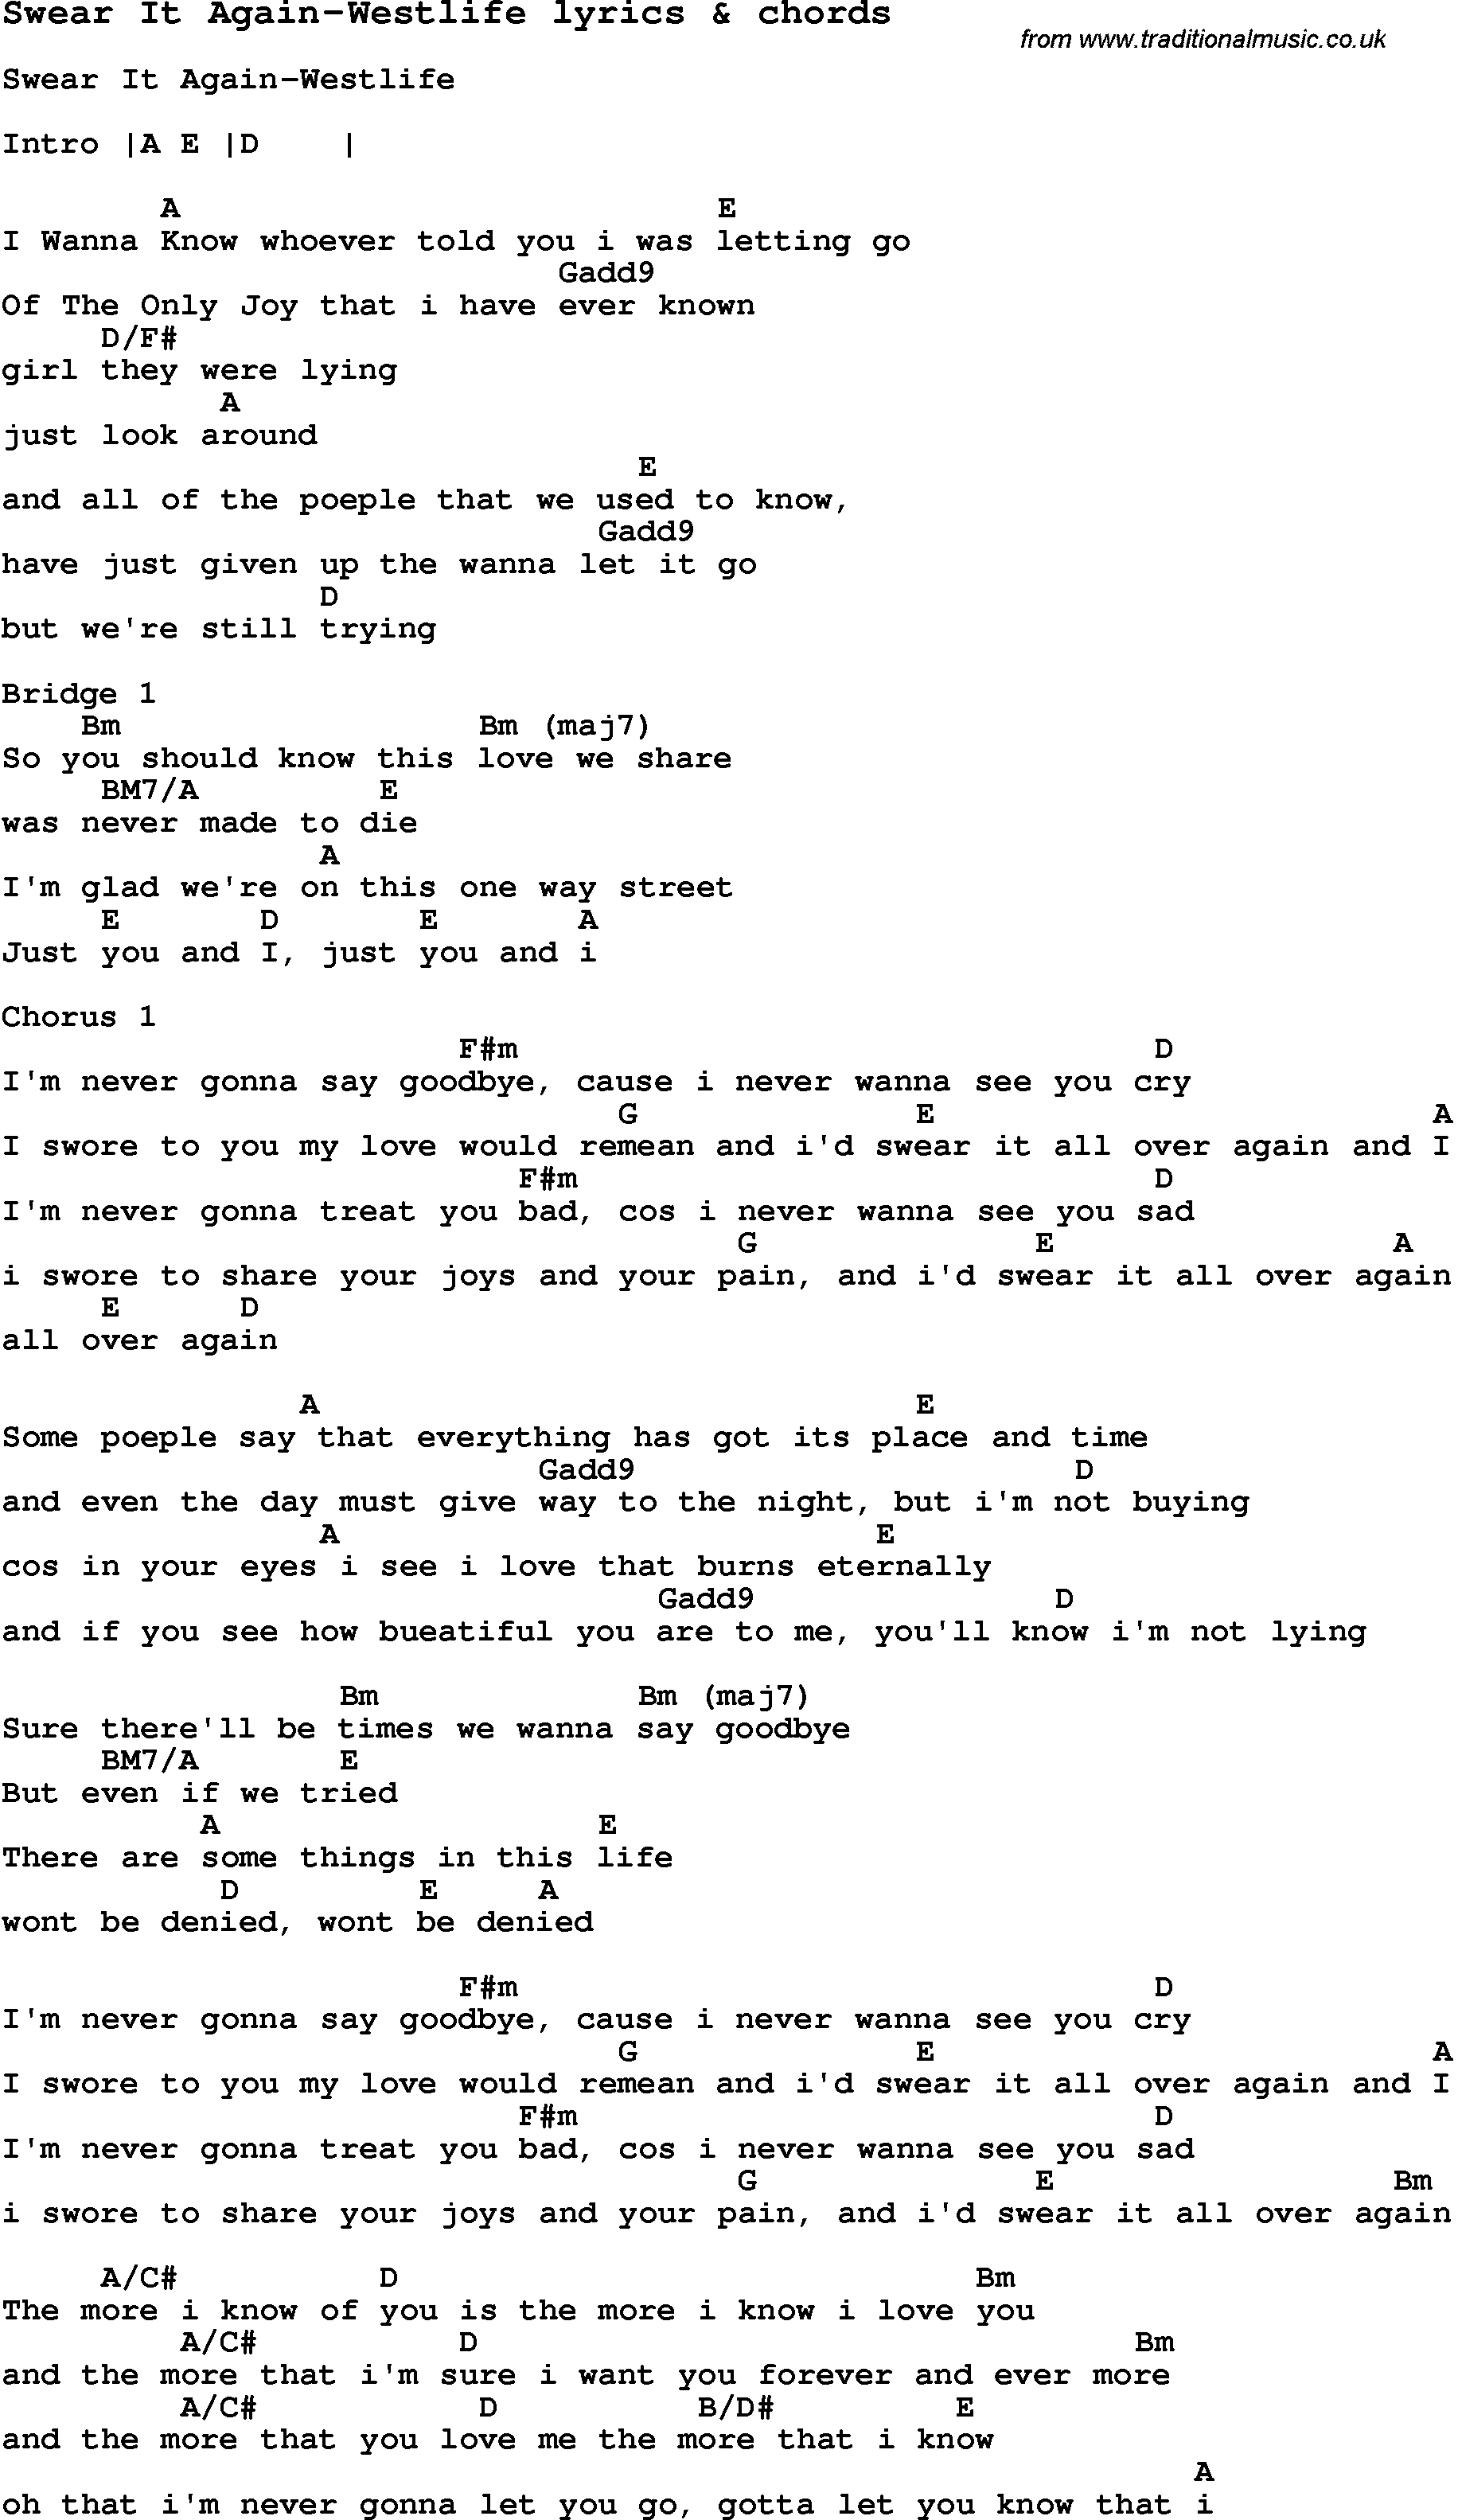 Love Song Lyrics Forswear It Again Westlife With Chords